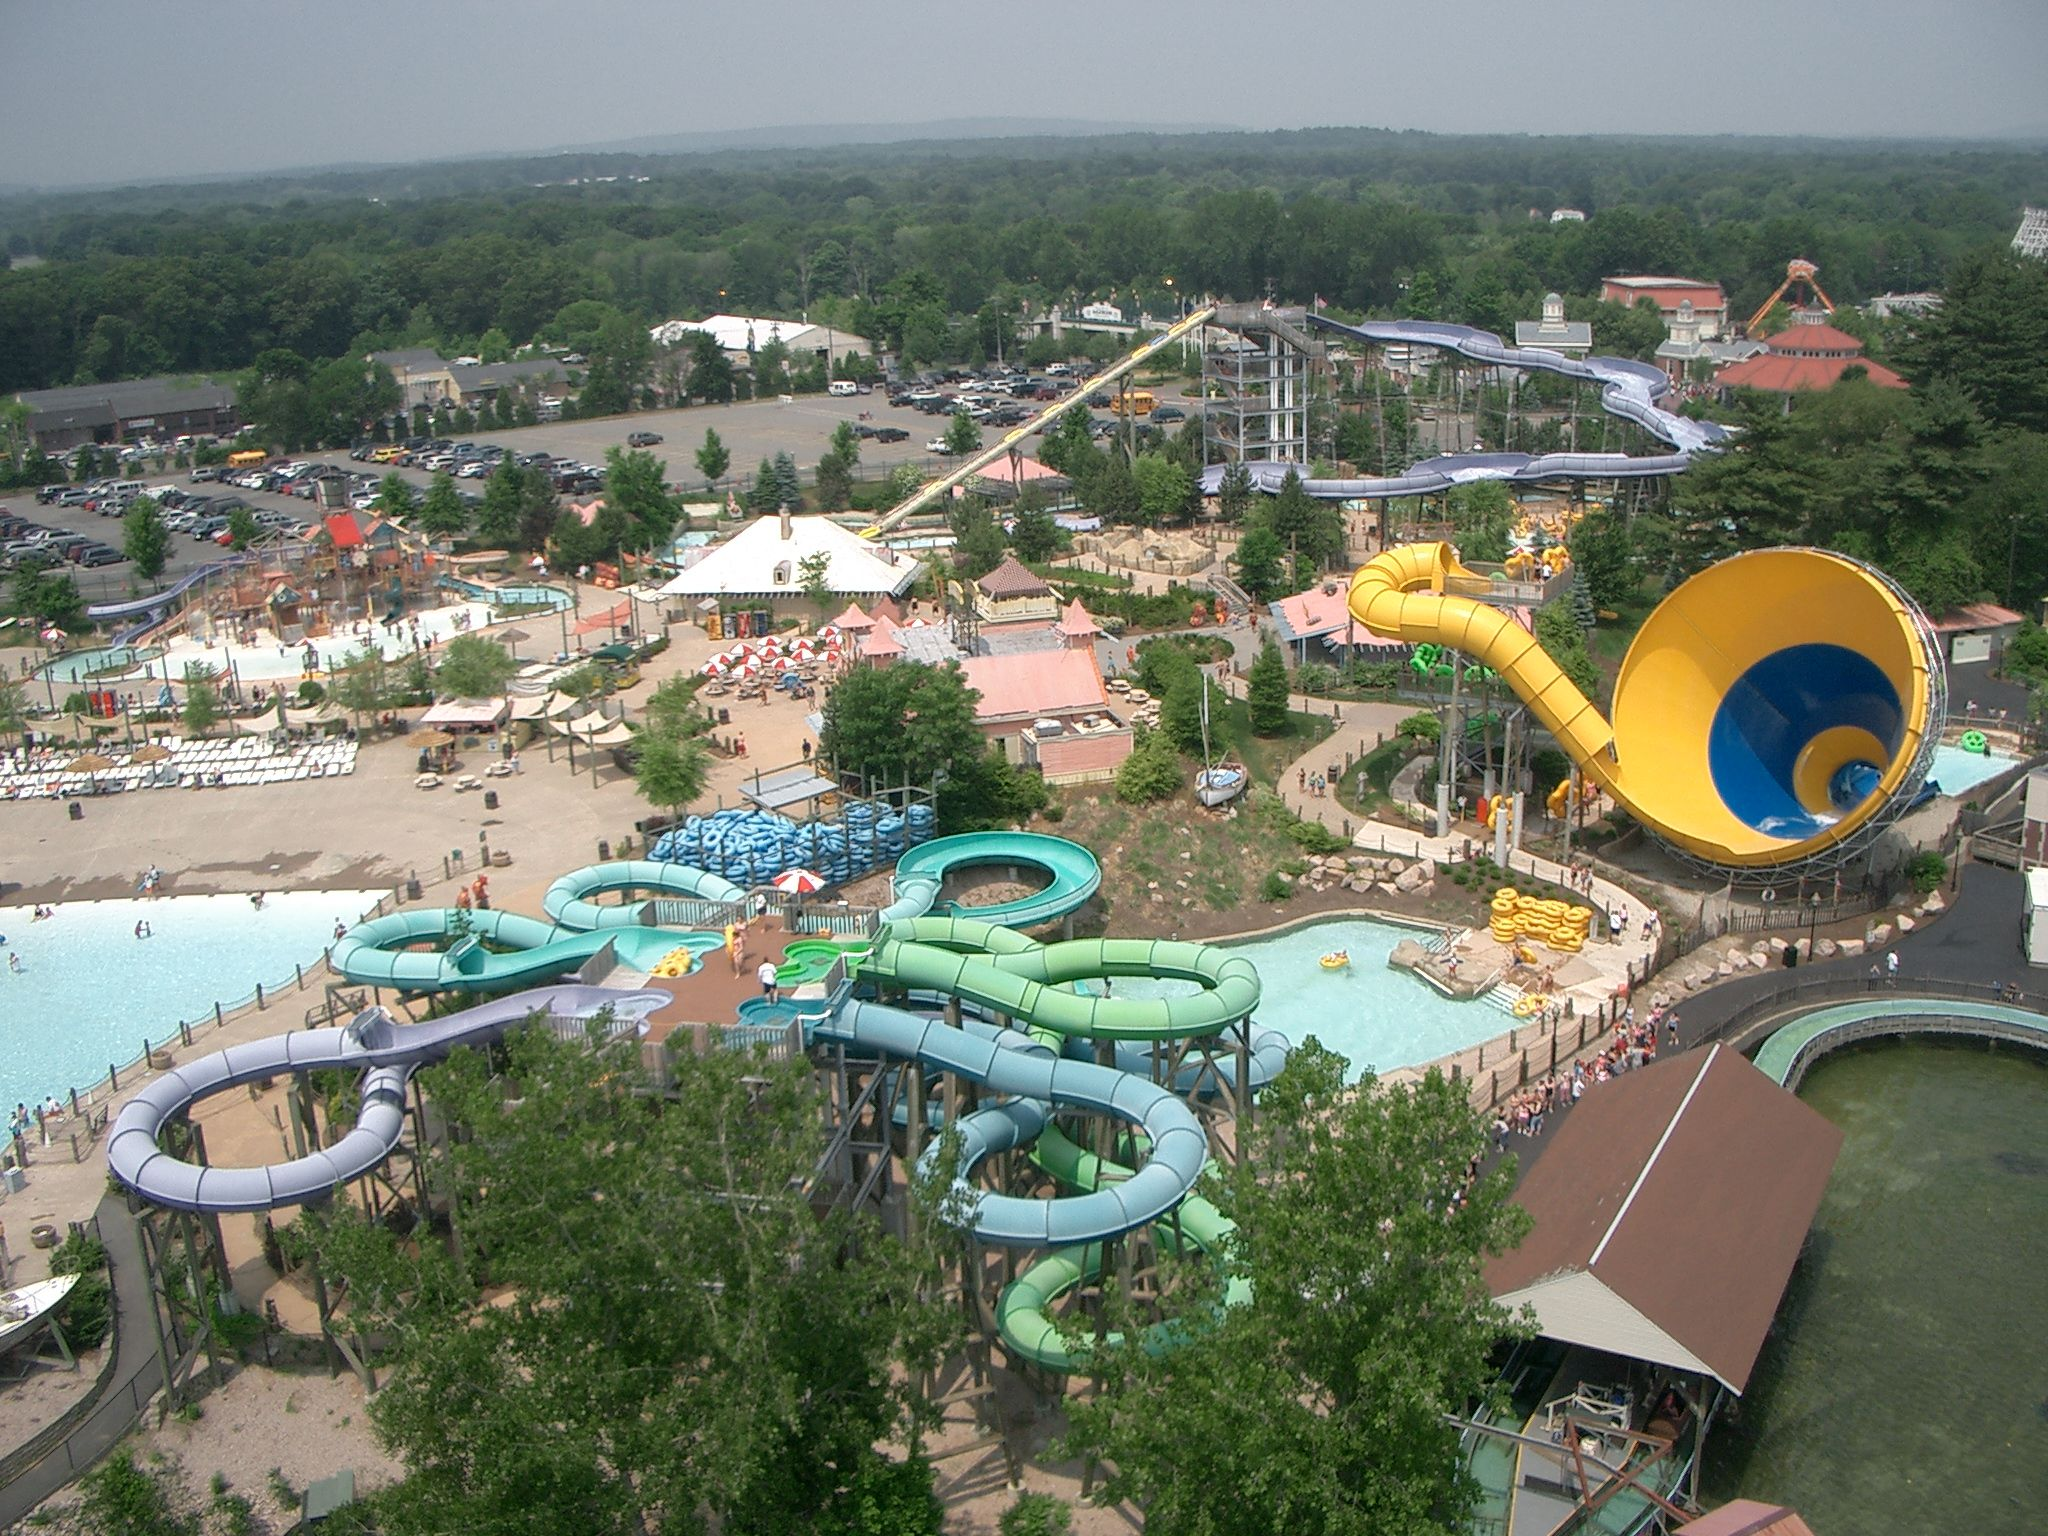 Going To Six Flags Water Parks And Rides With Images Busch Gardens Williamsburg Boston Vacation New England